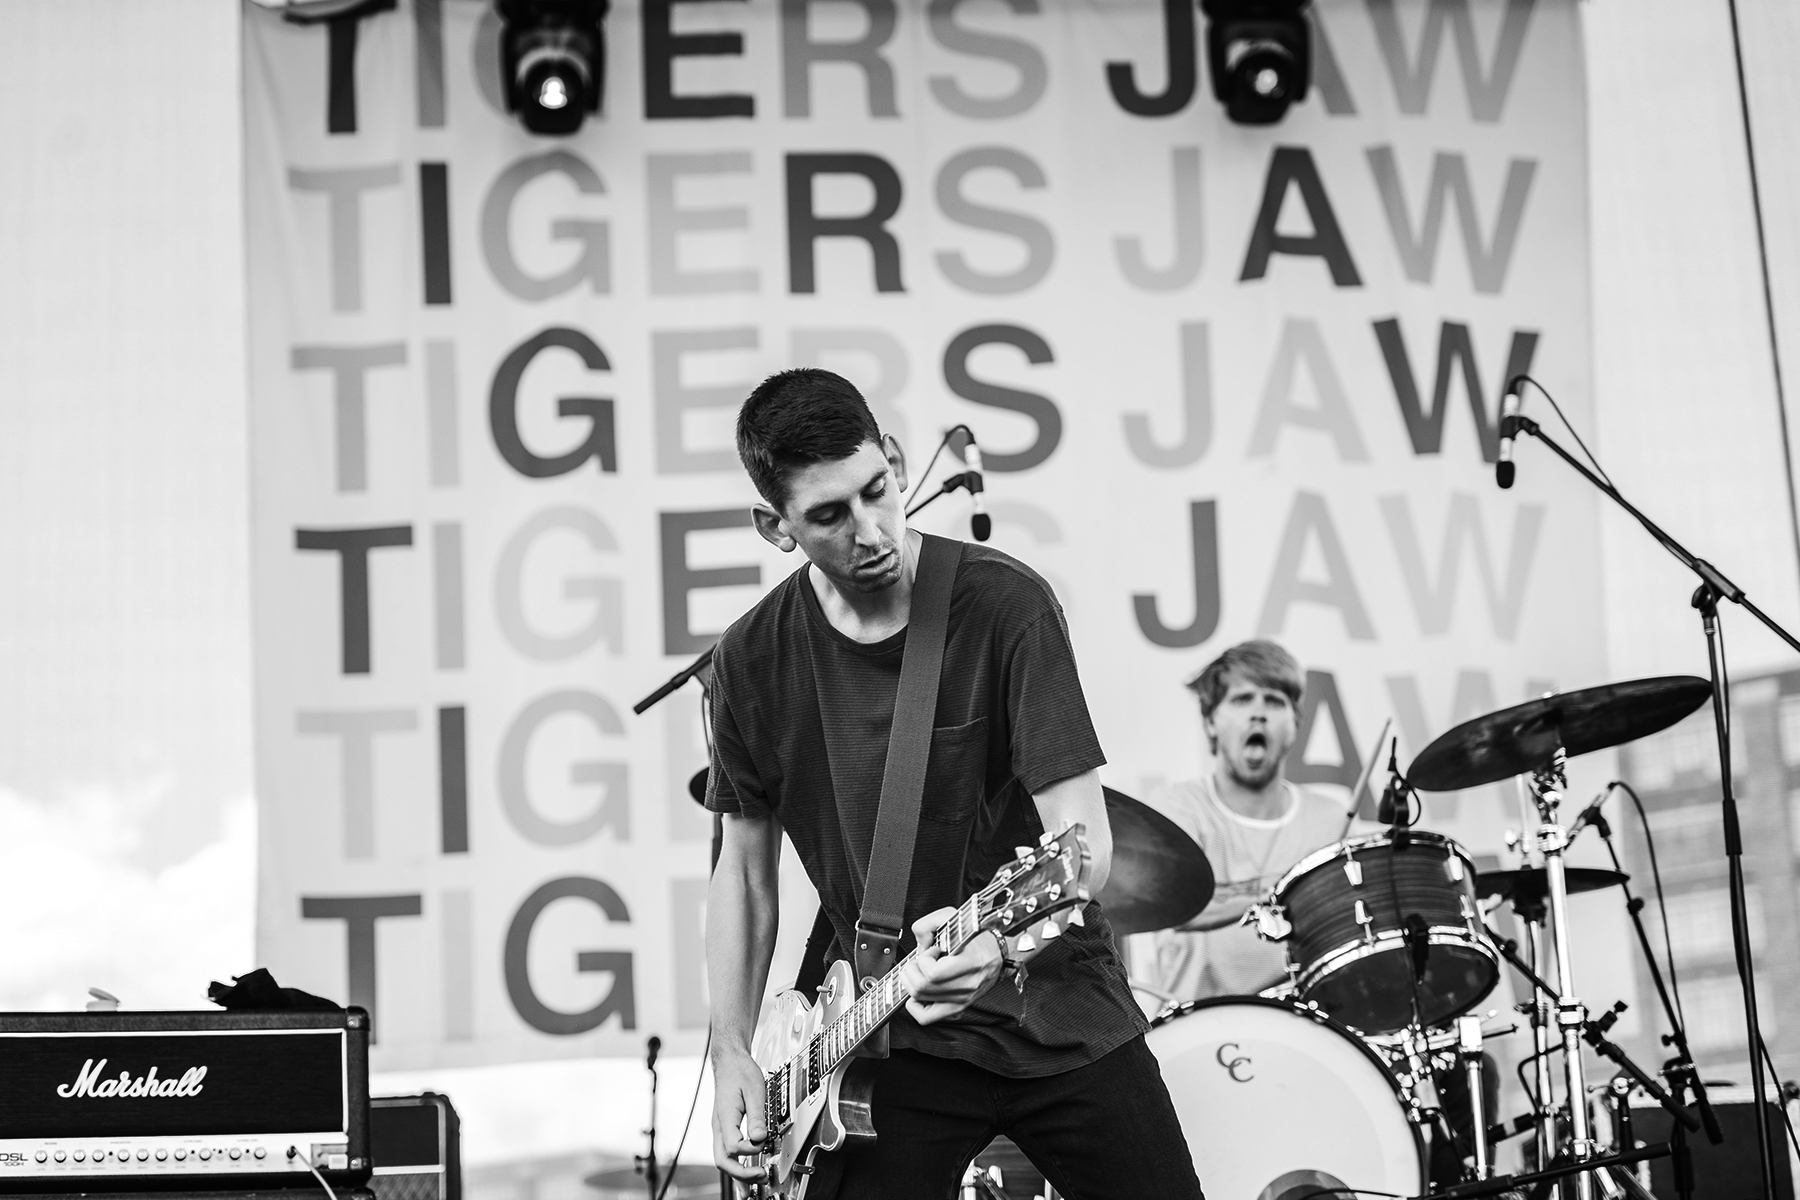 Tigers Jaw_WB6.jpg